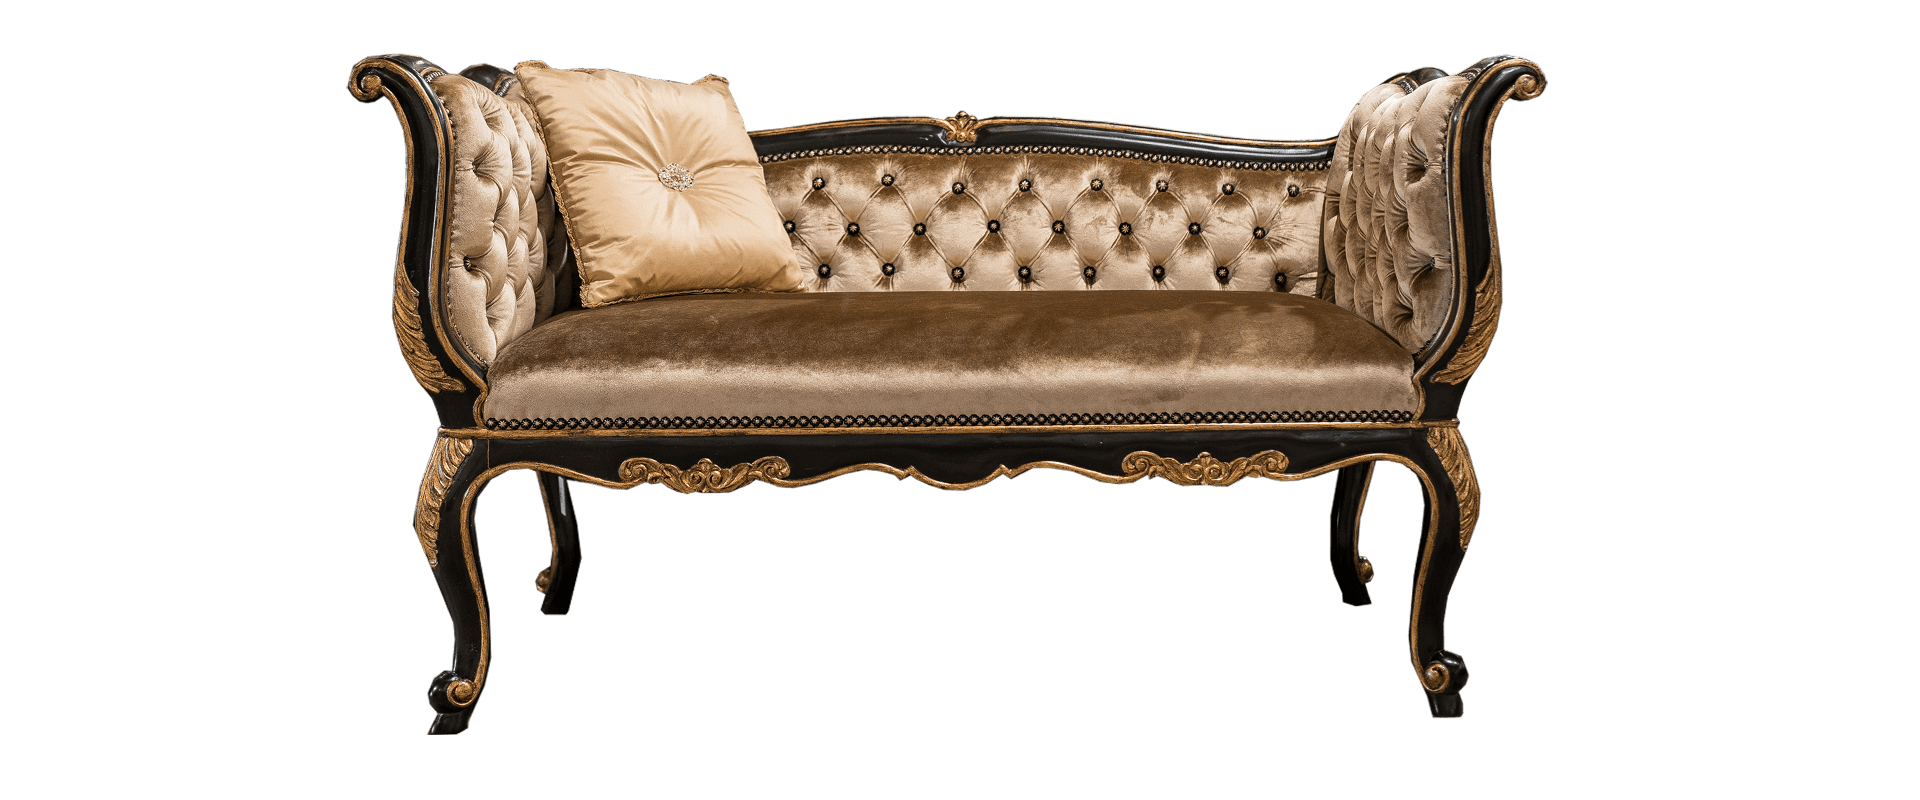 Luxury Marge Carson Bench from Linly Designs Showroom